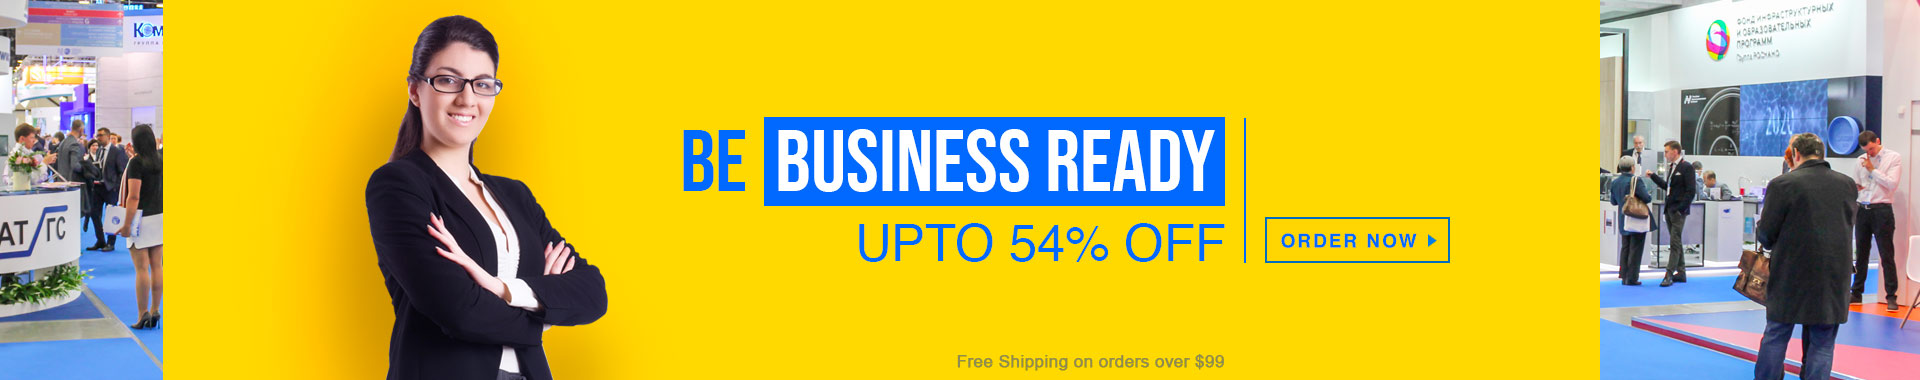 Be Business Ready - Up to 54% Off